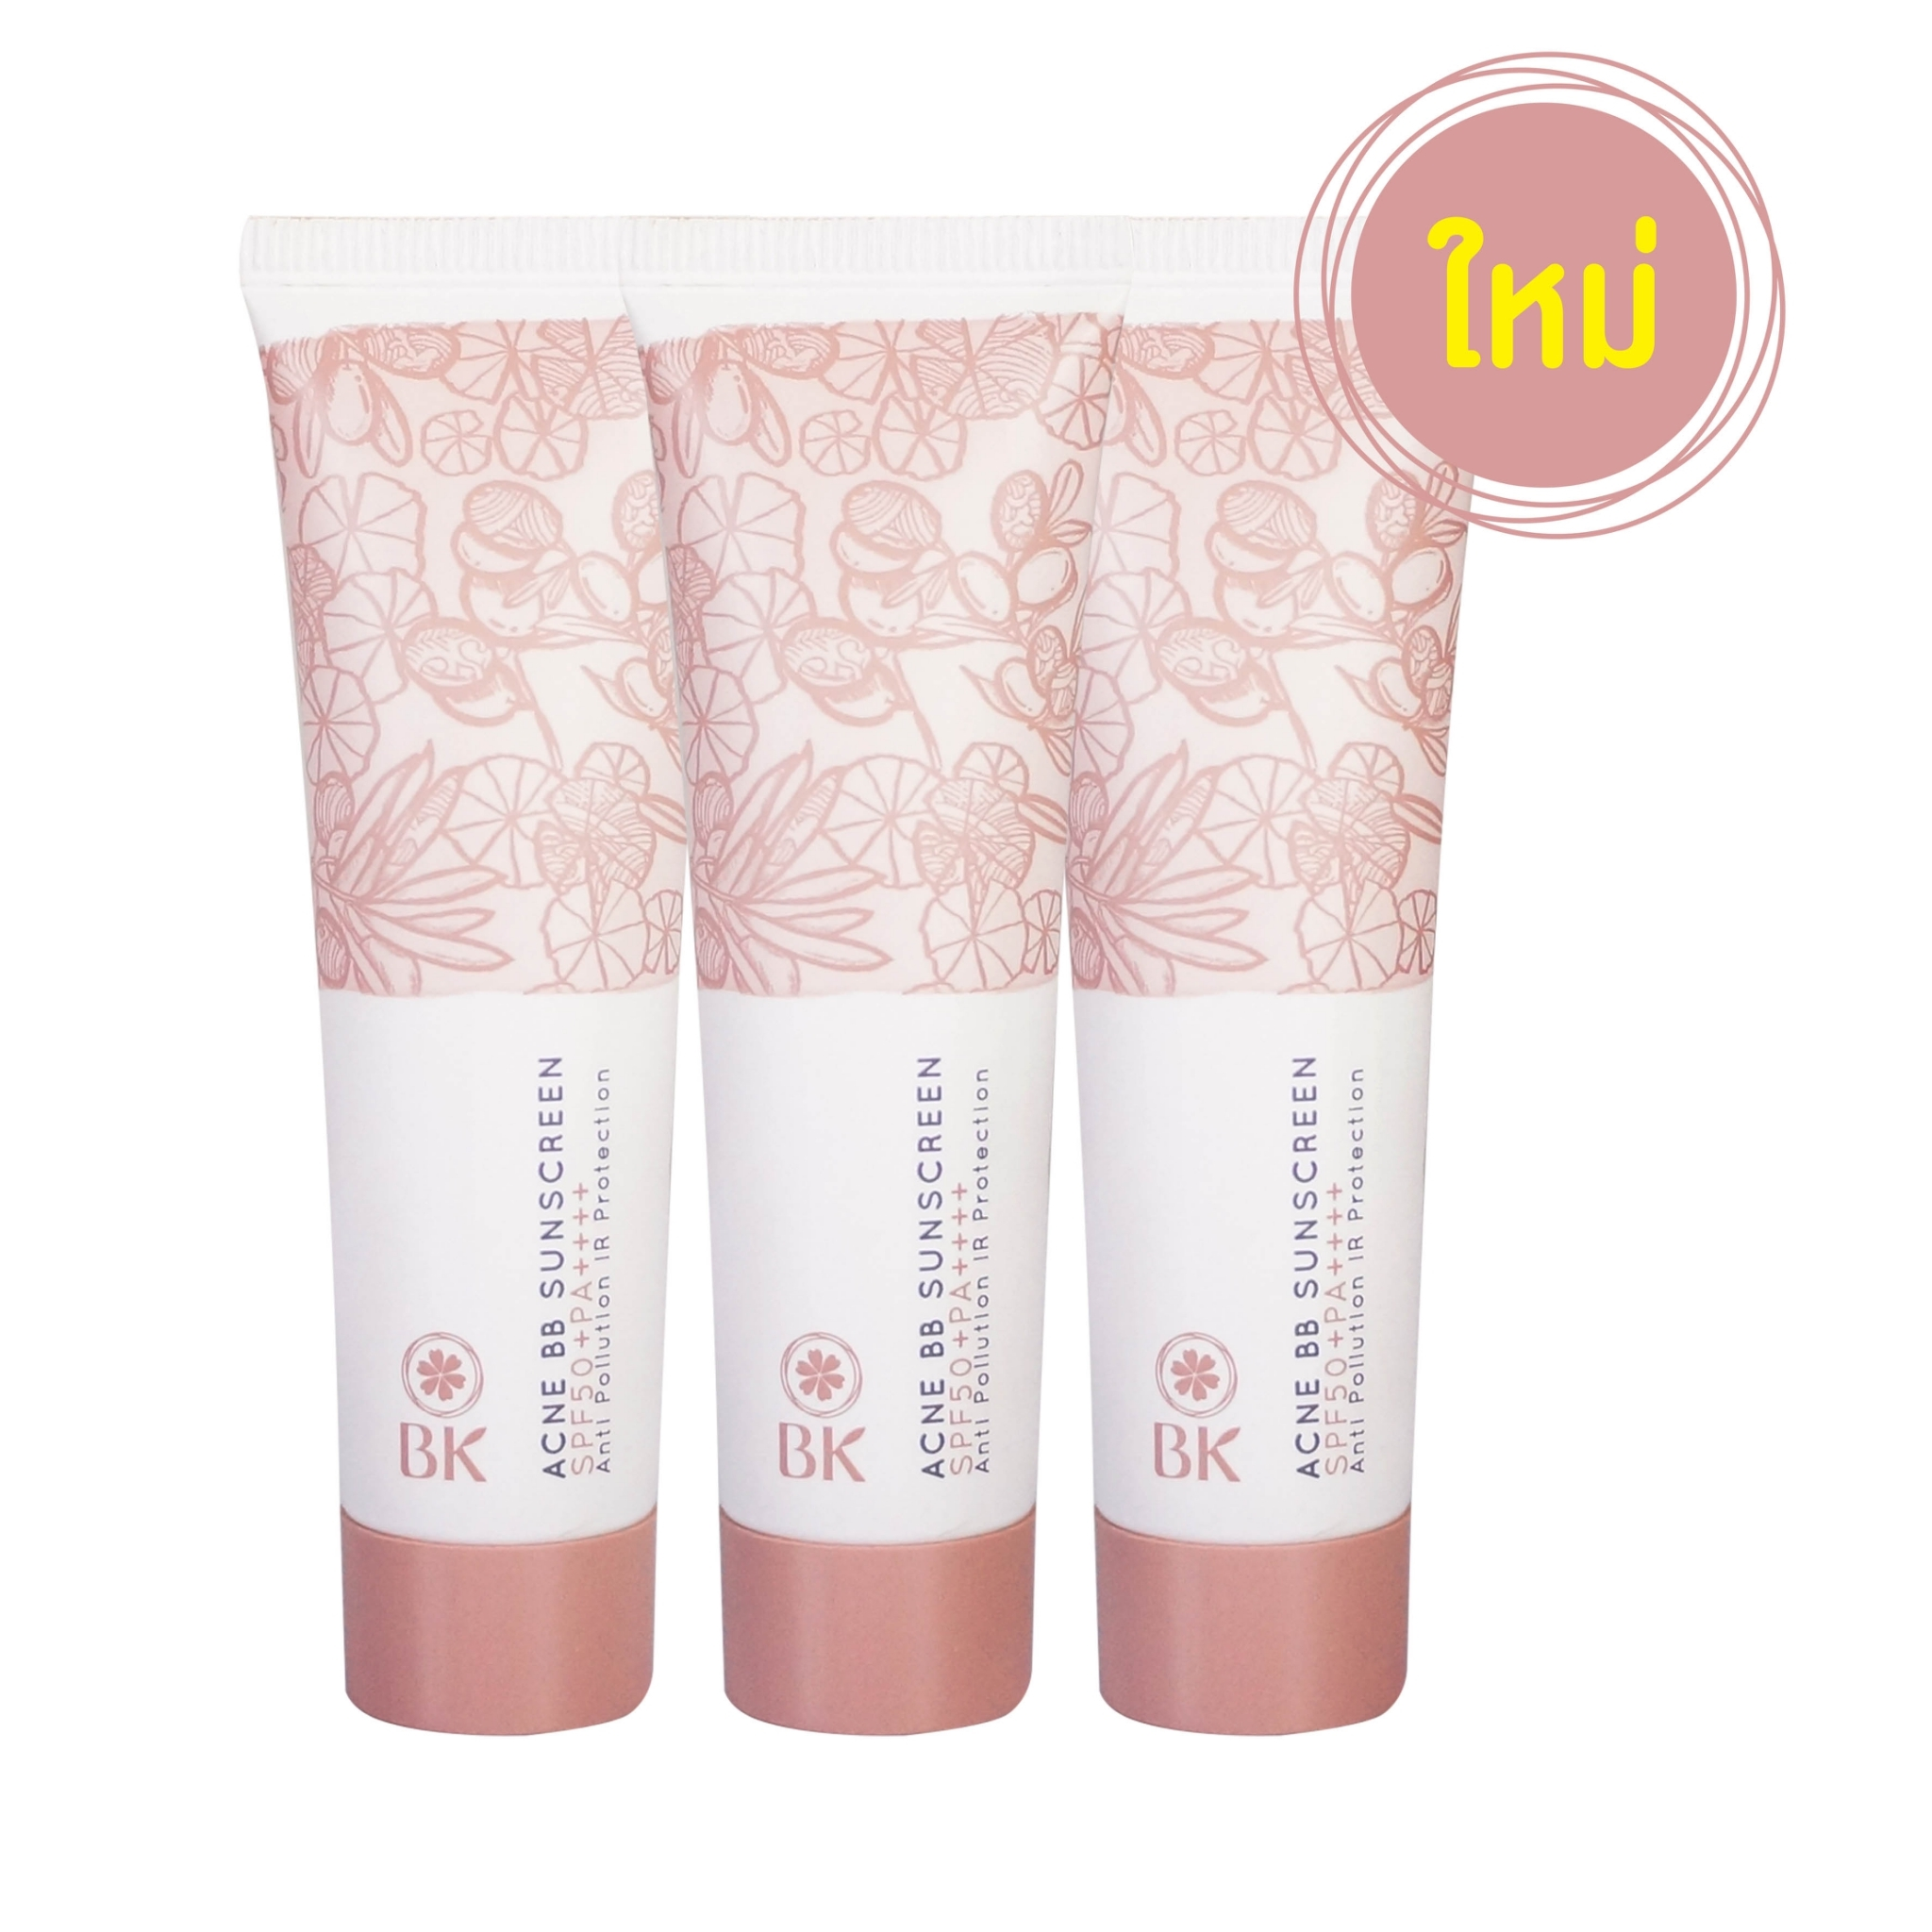 Set x3 : BK Acne BB Sunscreen SPF50+ PA++++